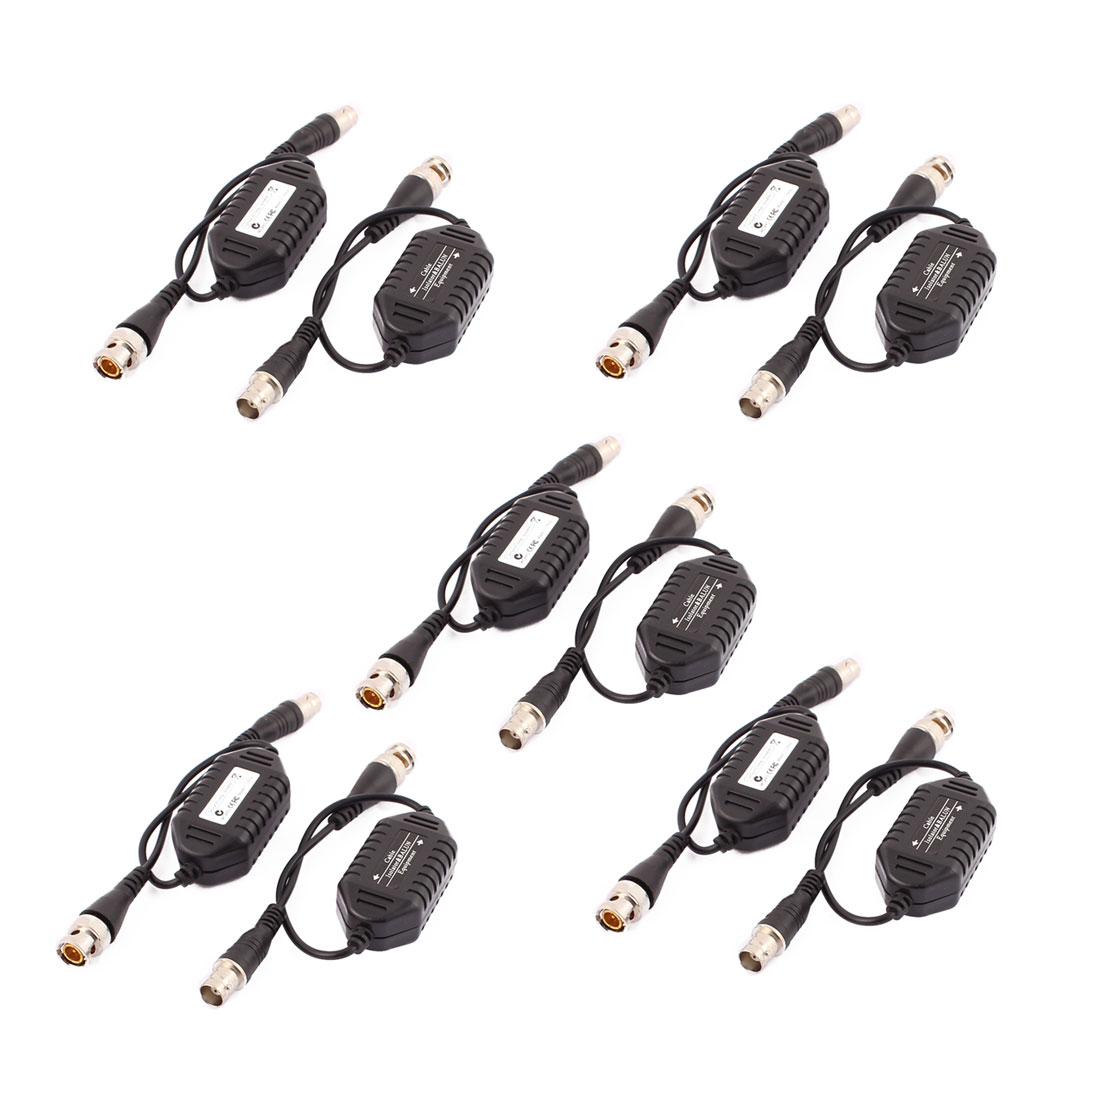 Unique Bargains 10 Pcs Coaxial Video Ground Loop Isolator Balun BNC Male to Female for CCTV